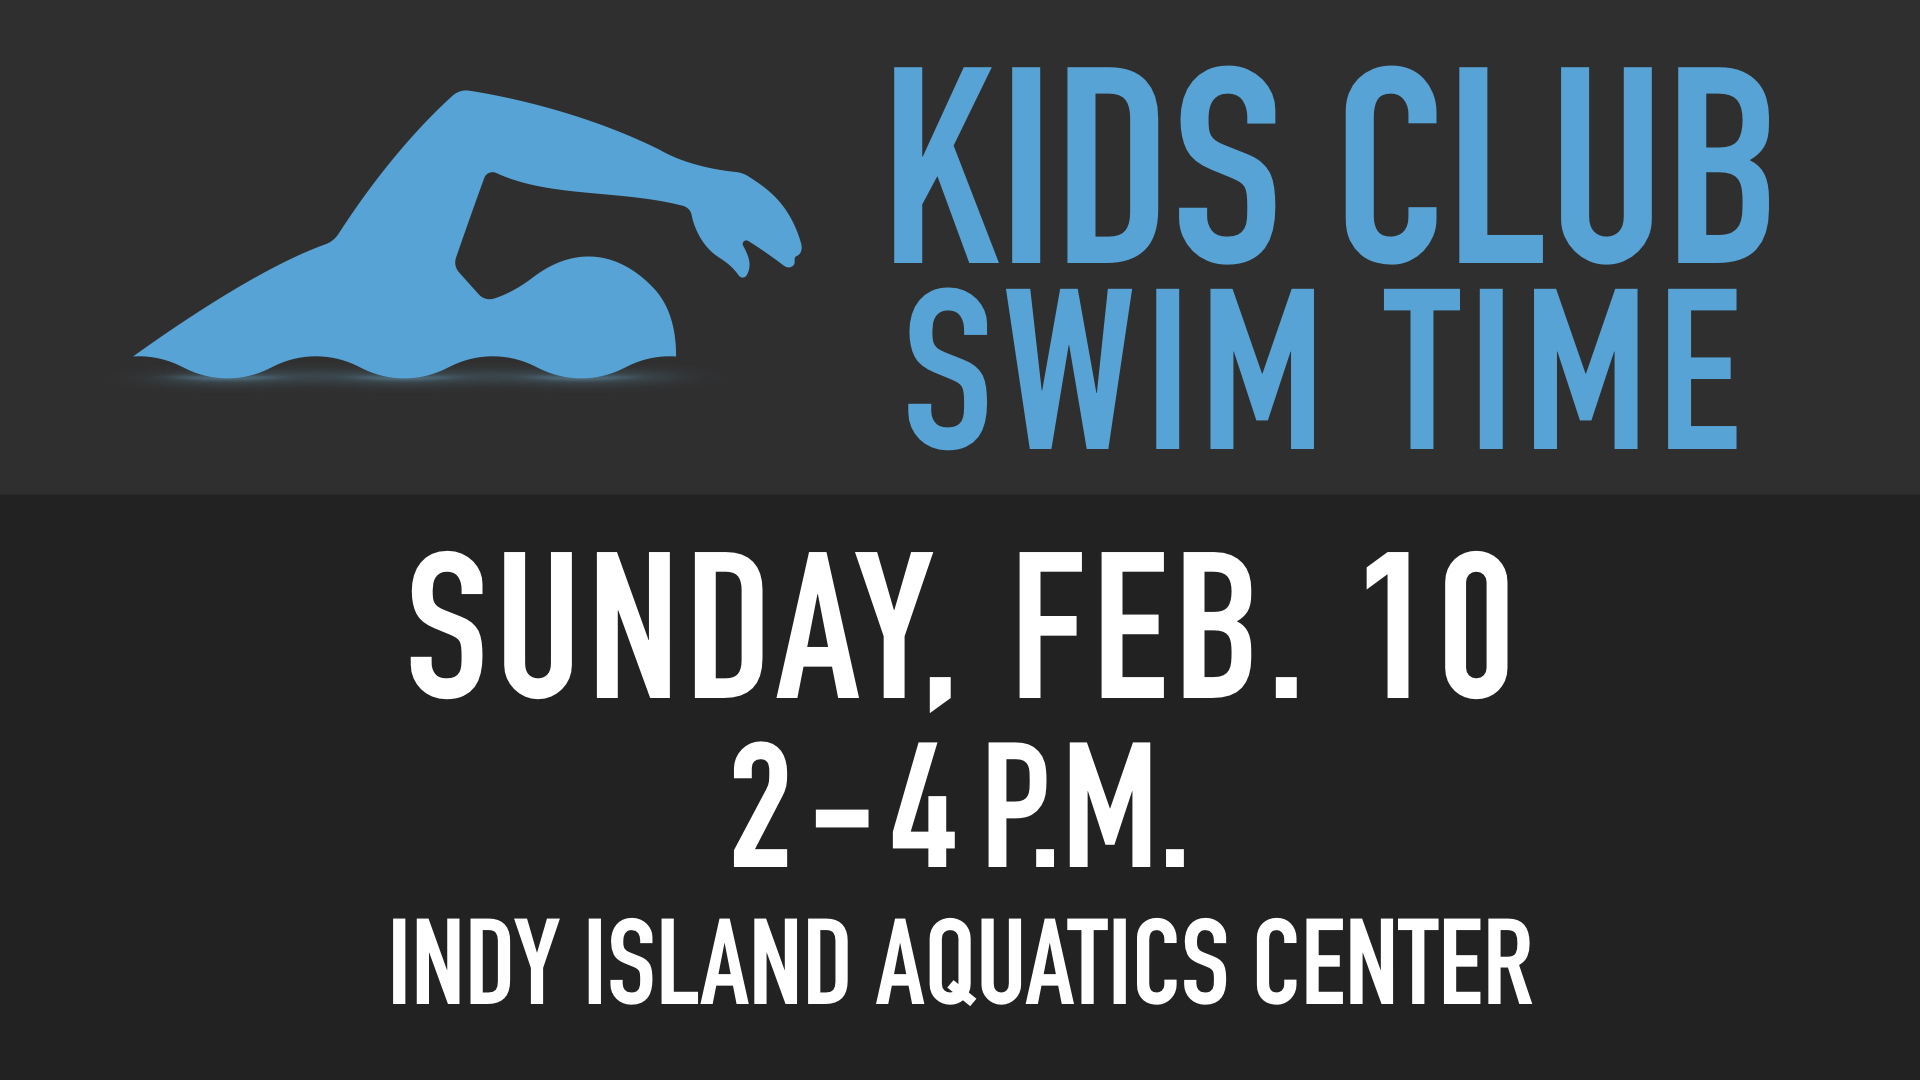 RLC Kids Club Swim Time at Indy Island Aquatics Center